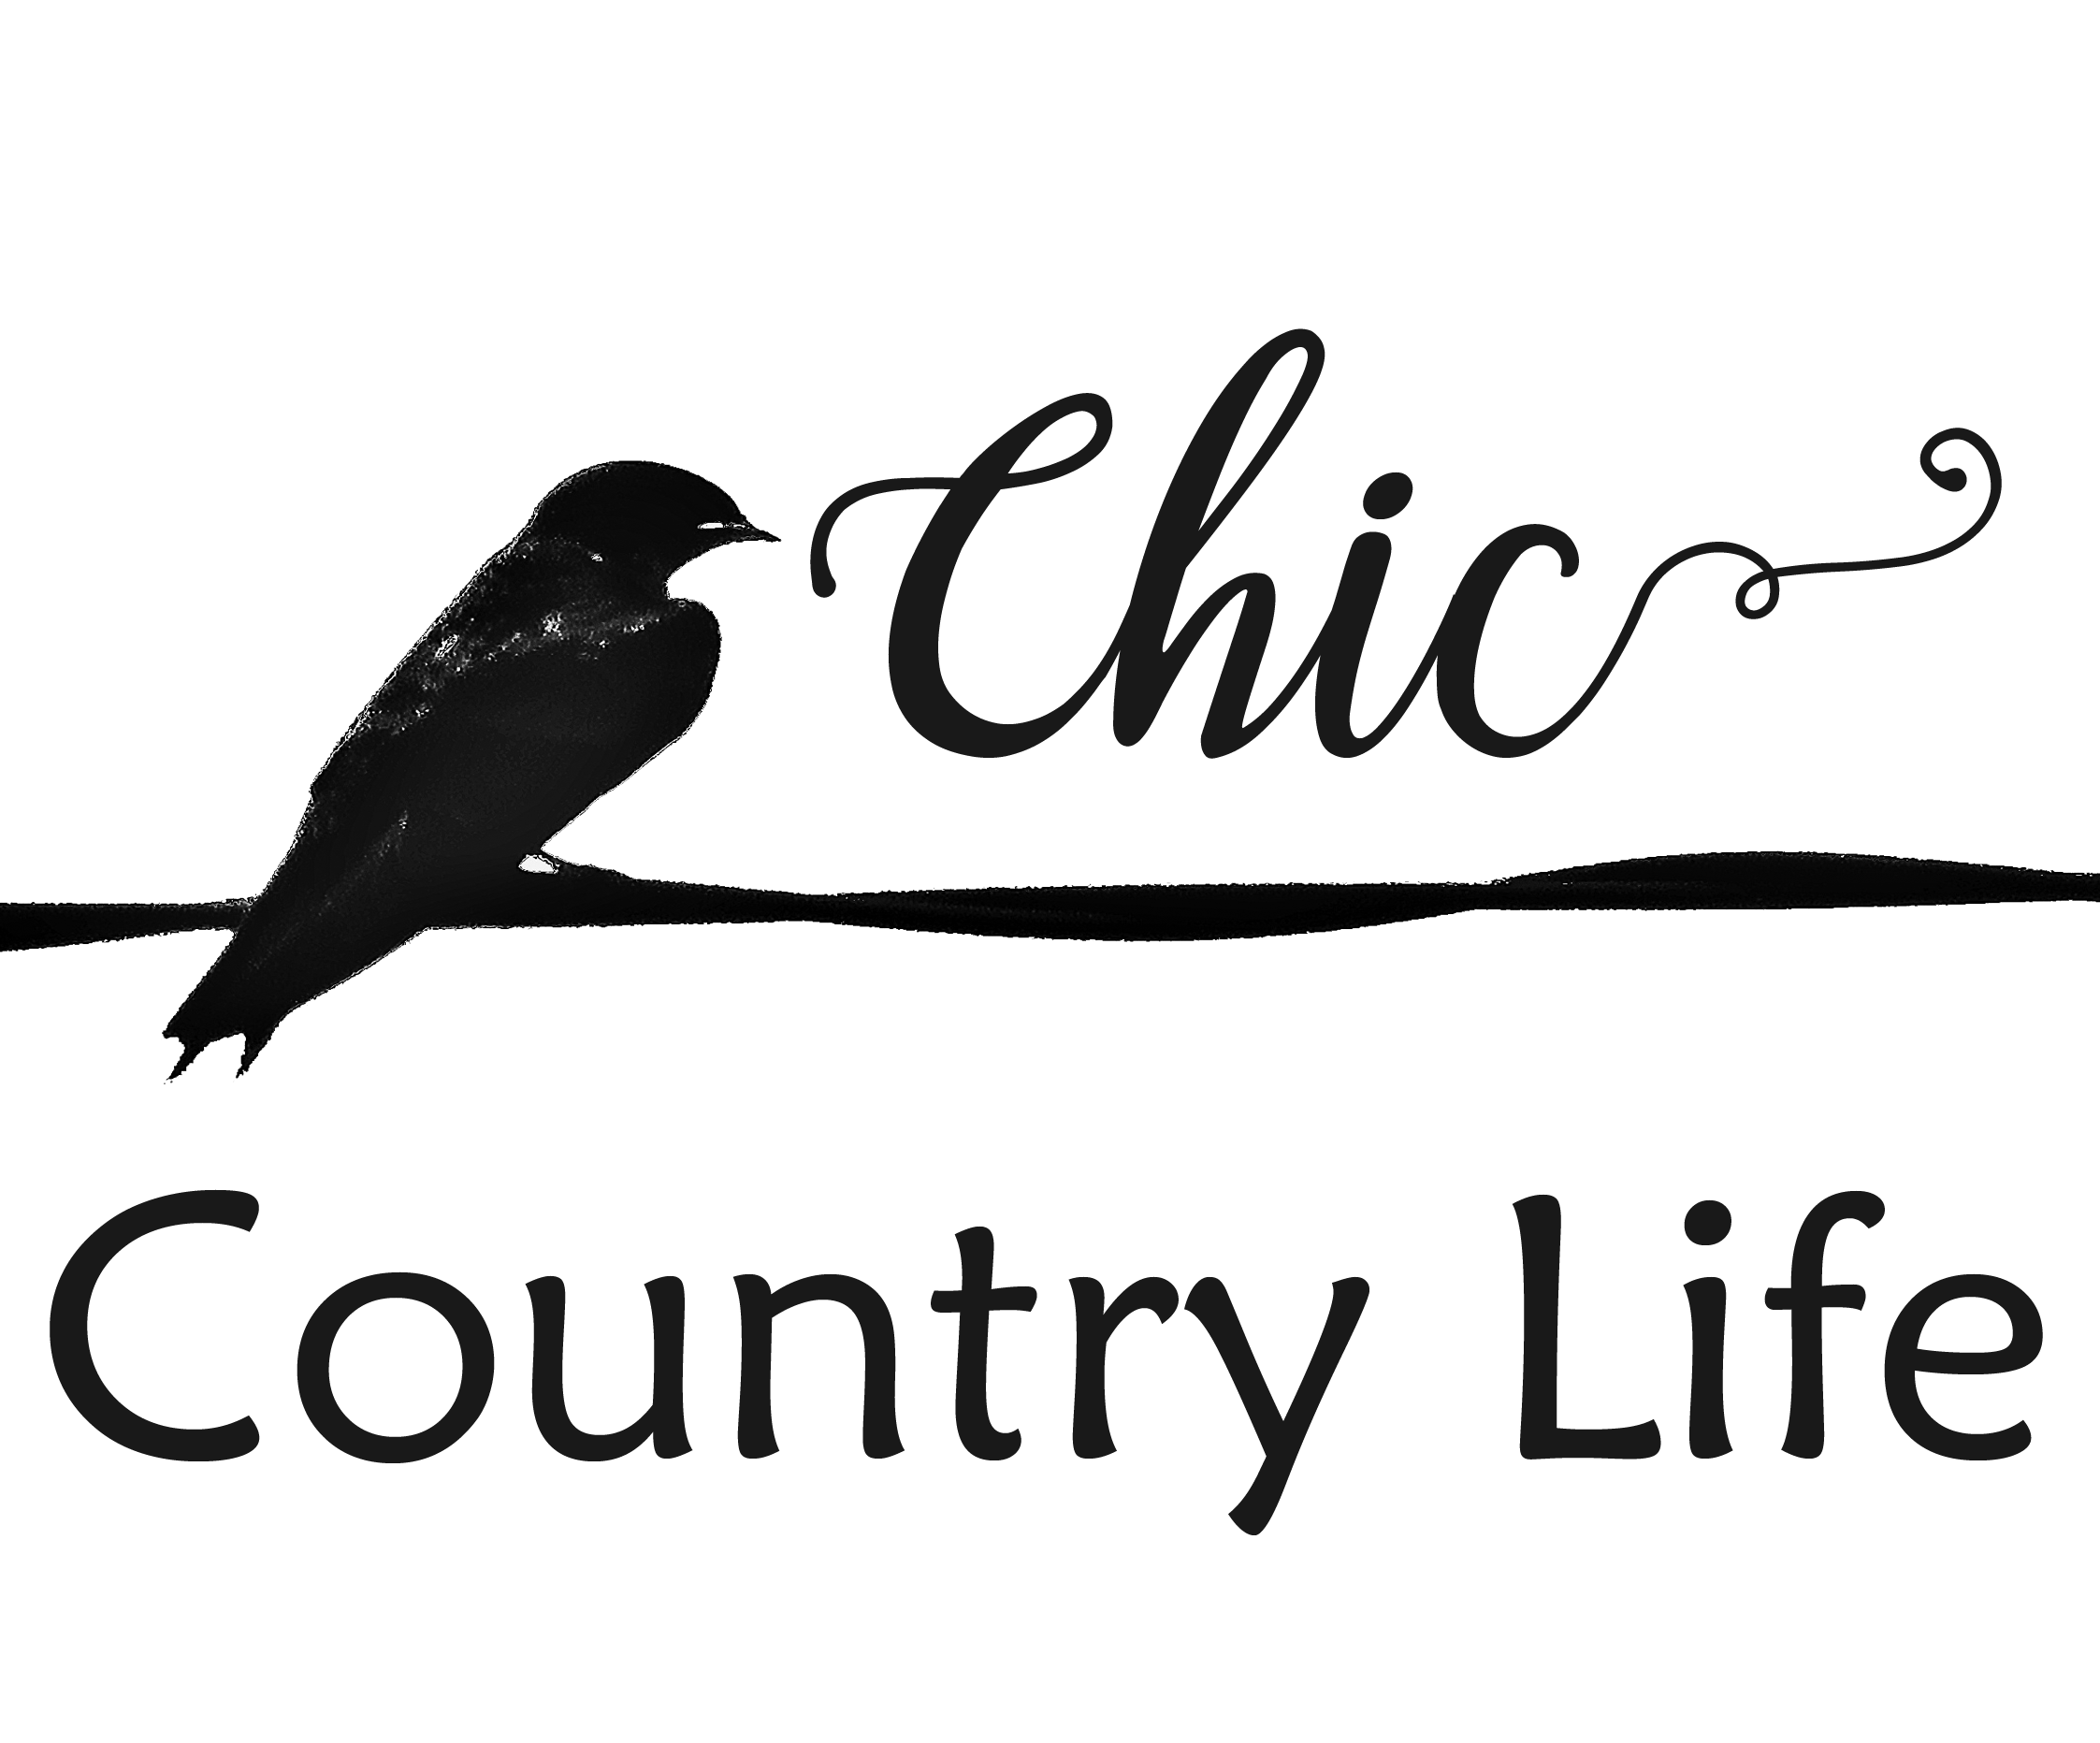 Chic Country Life Media